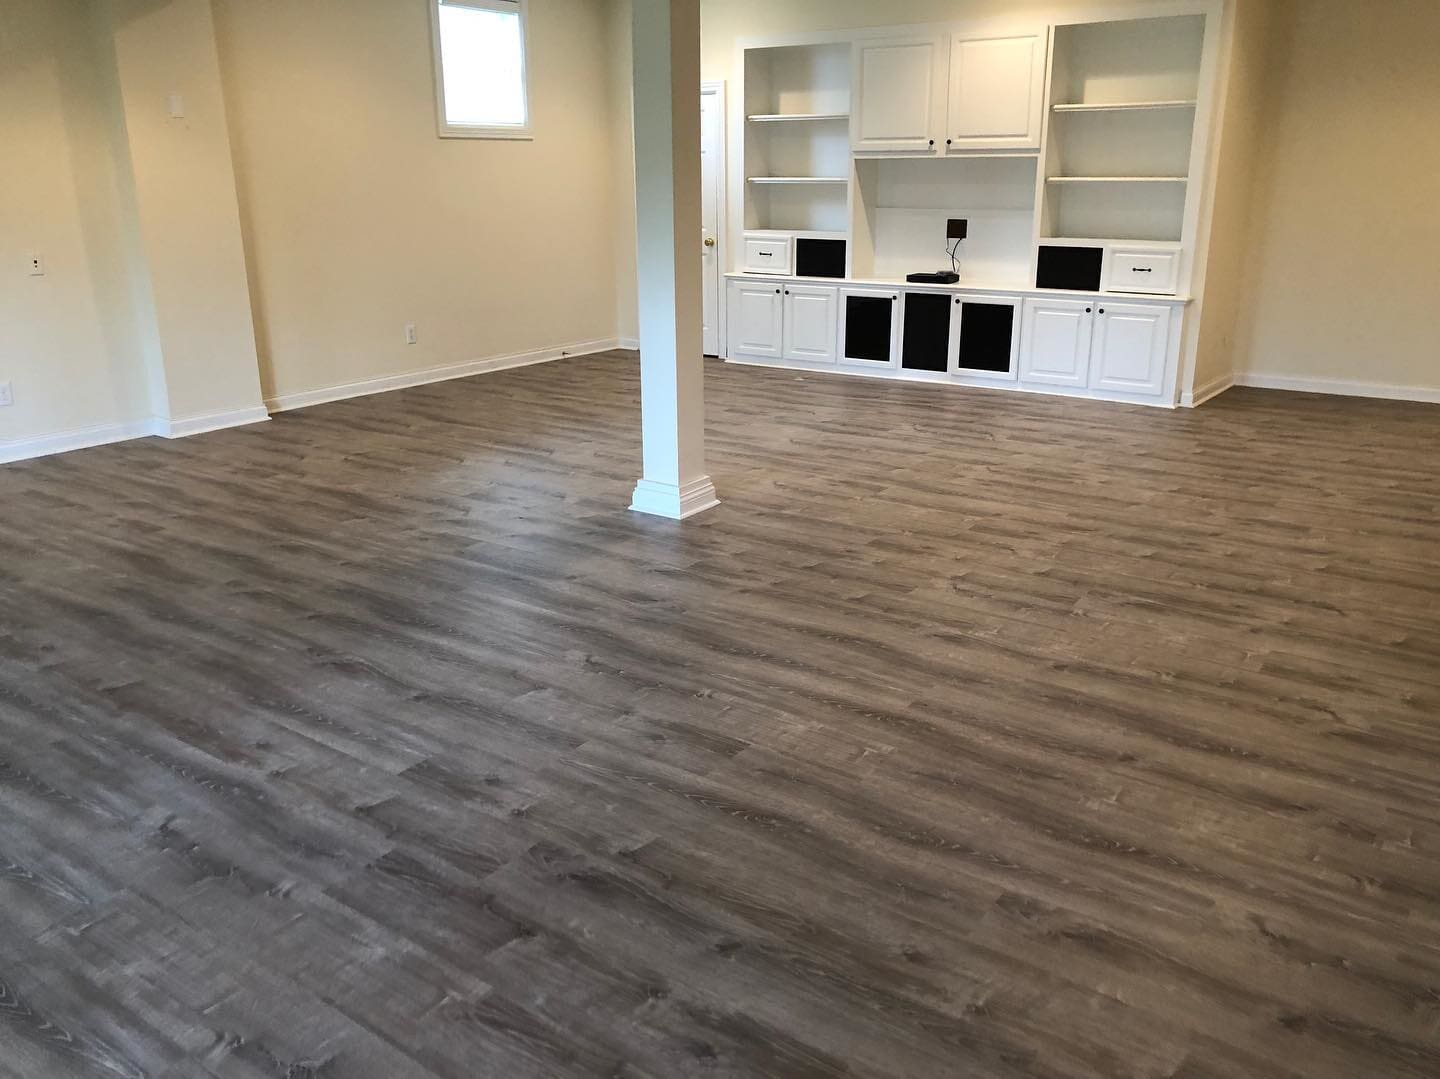 Wood look living room flooring in Clarksville, IN from Unique Flooring Solutions